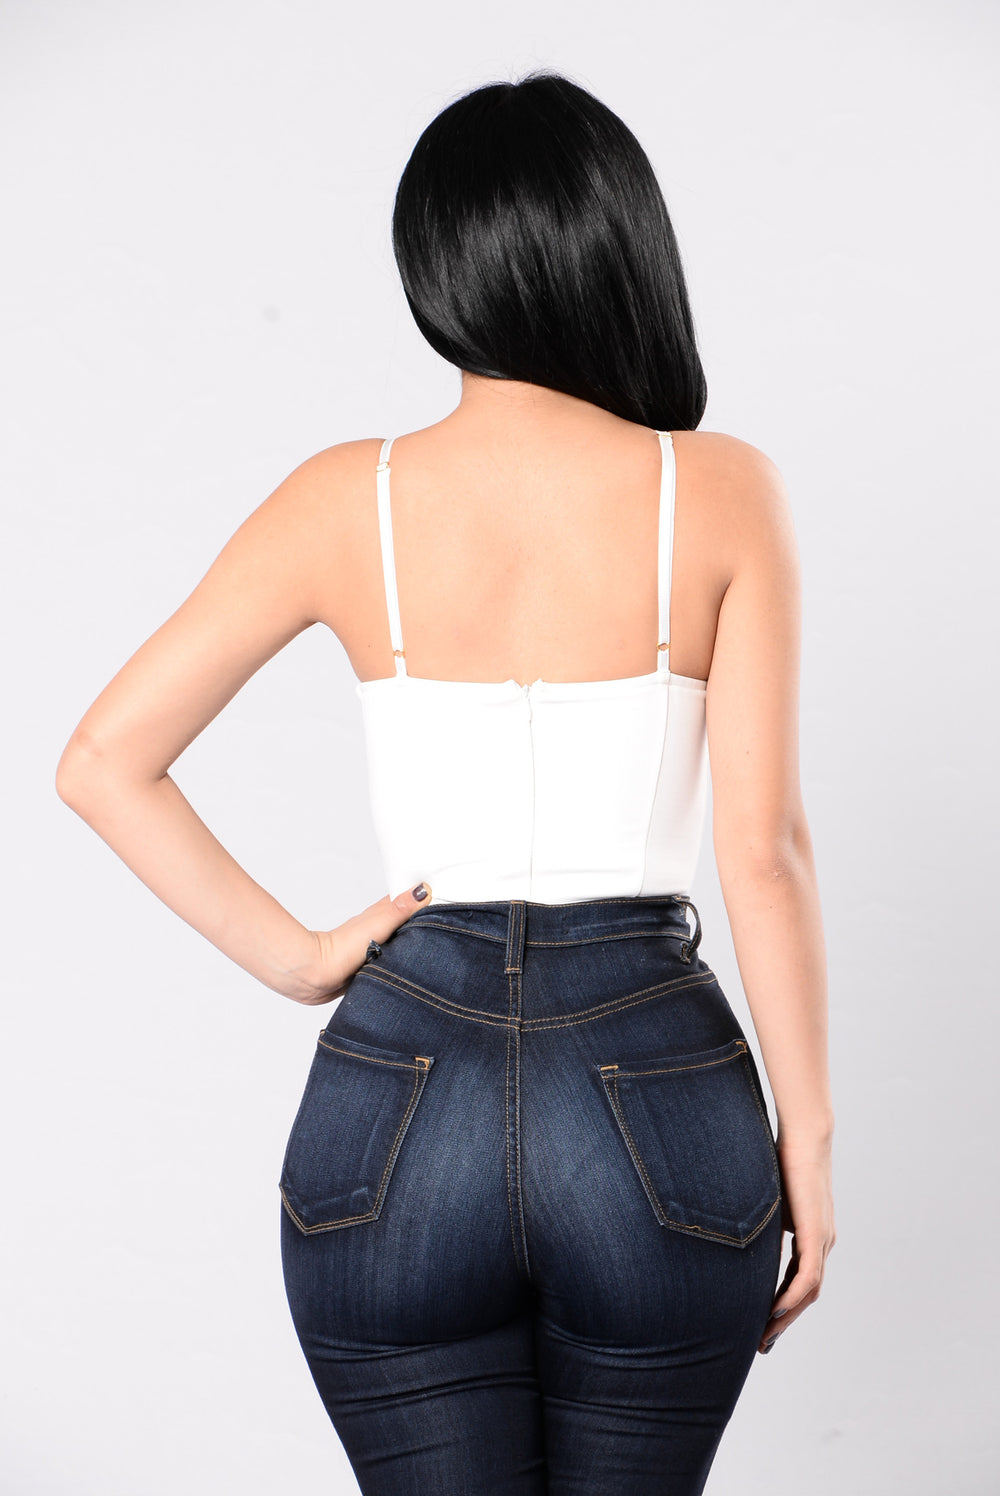 More Than Friends Bodysuit - Ivory